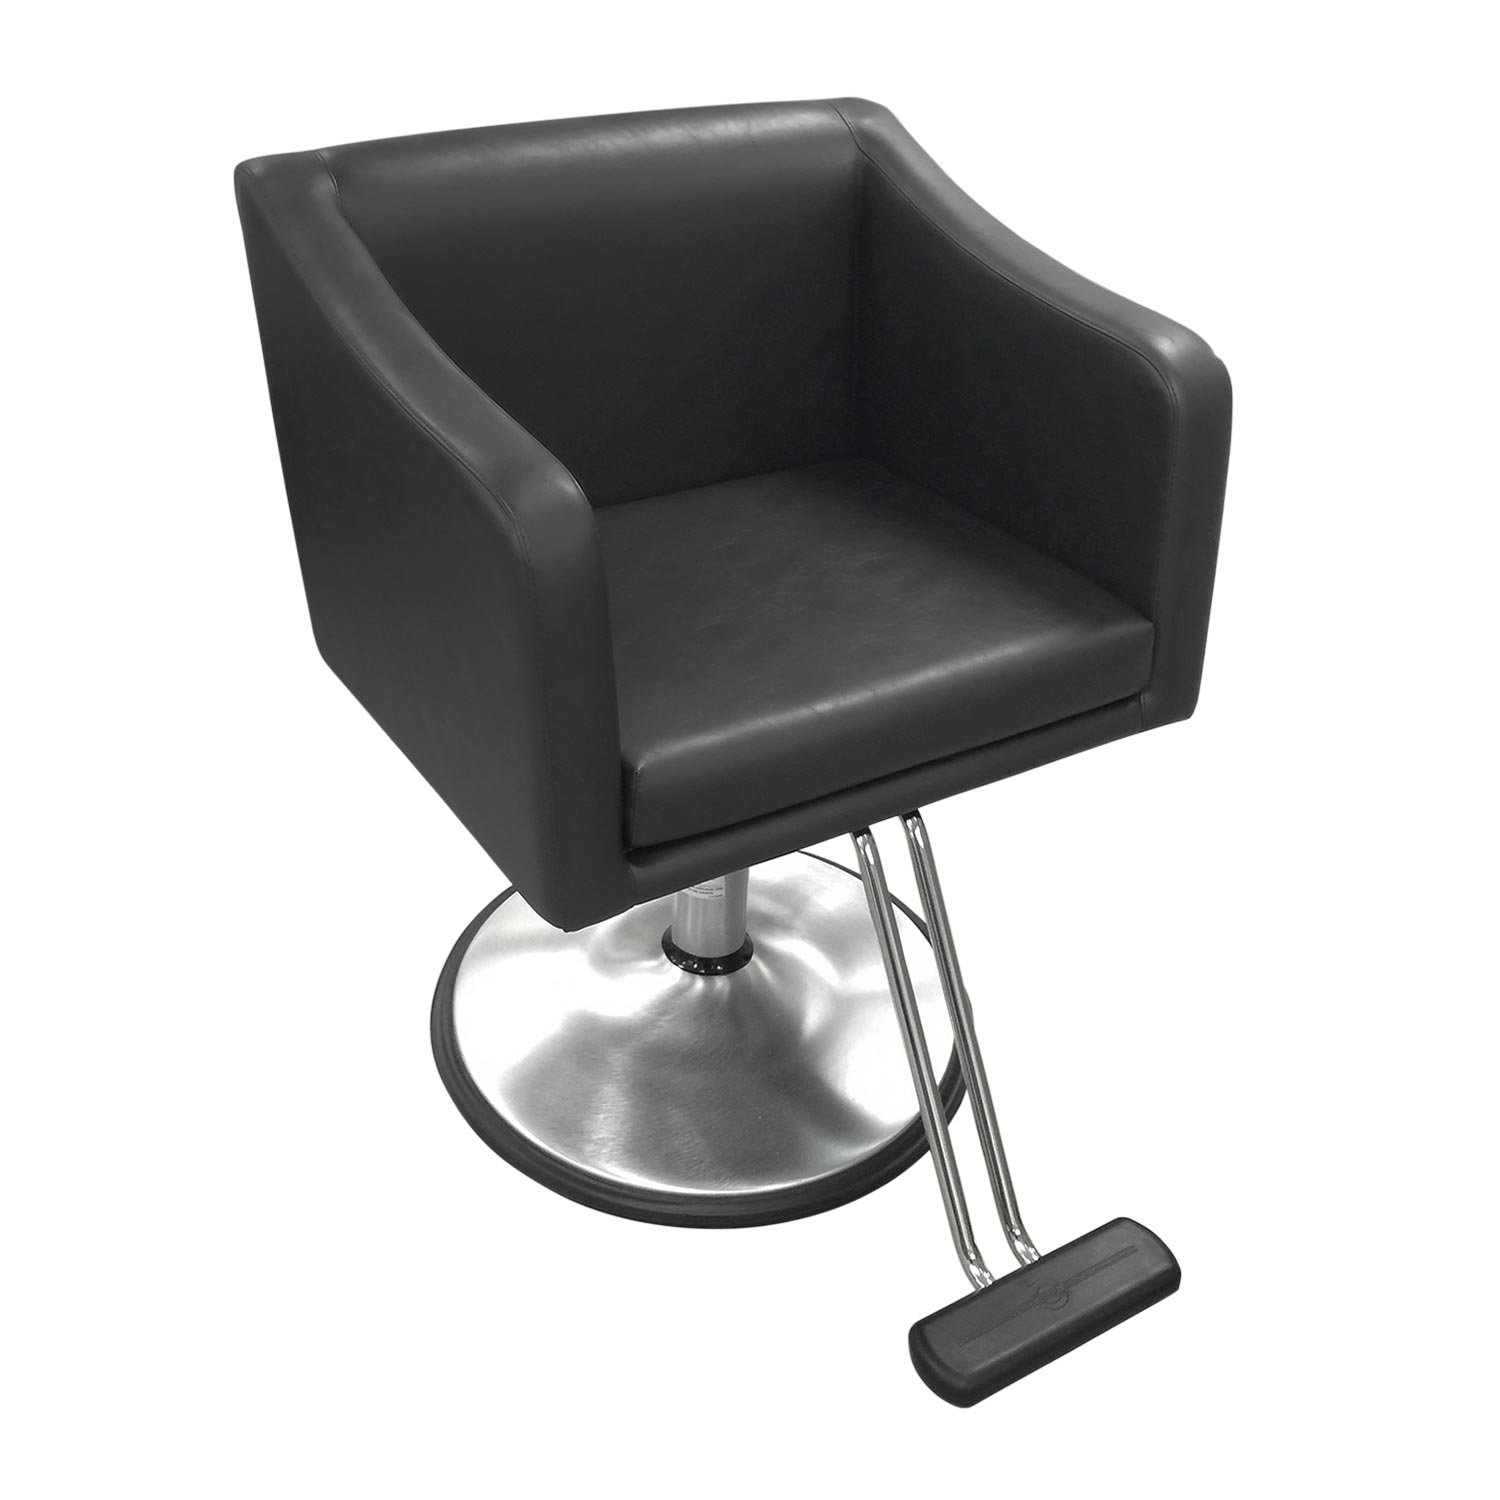 Belvedere Look Styling Chair  main product image